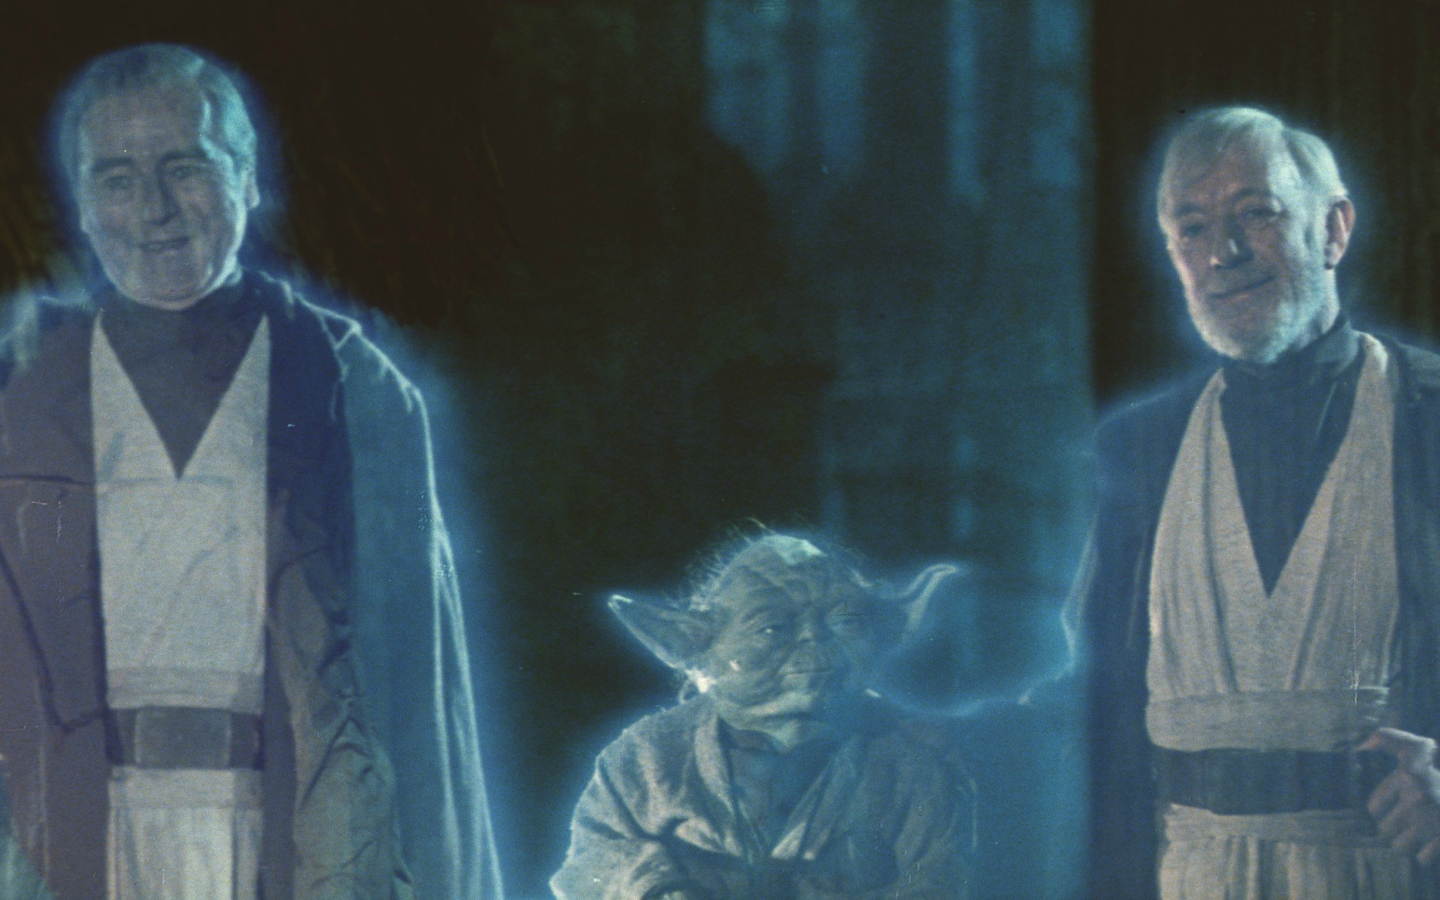 Free Download Vi Return Of The Jedi Yoda Old Anakin Obi Wan Spirits Hd Wallpaper 3520x1510 For Your Desktop Mobile Tablet Explore 50 Return Of The Jedi Wallpaper Star